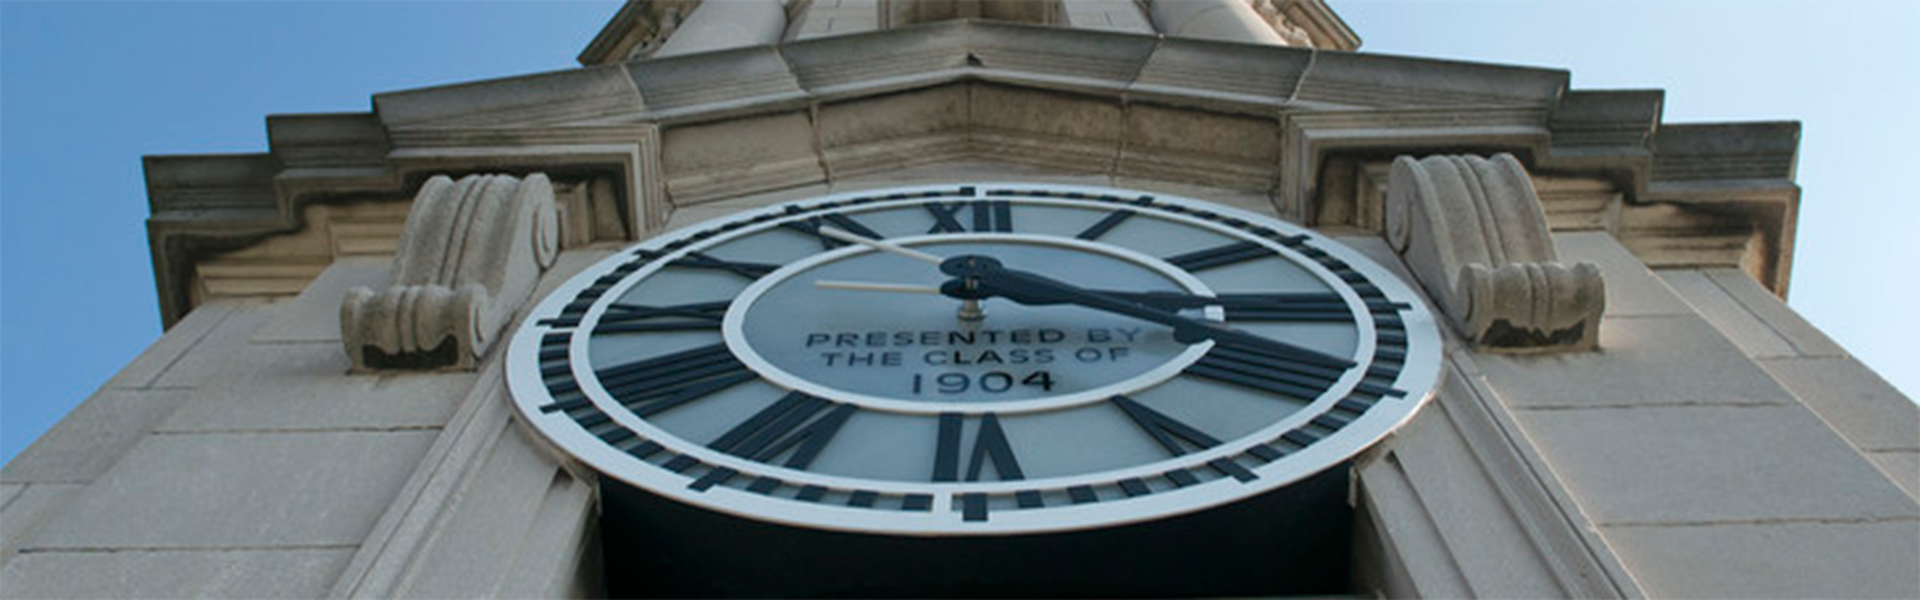 Old Main clock